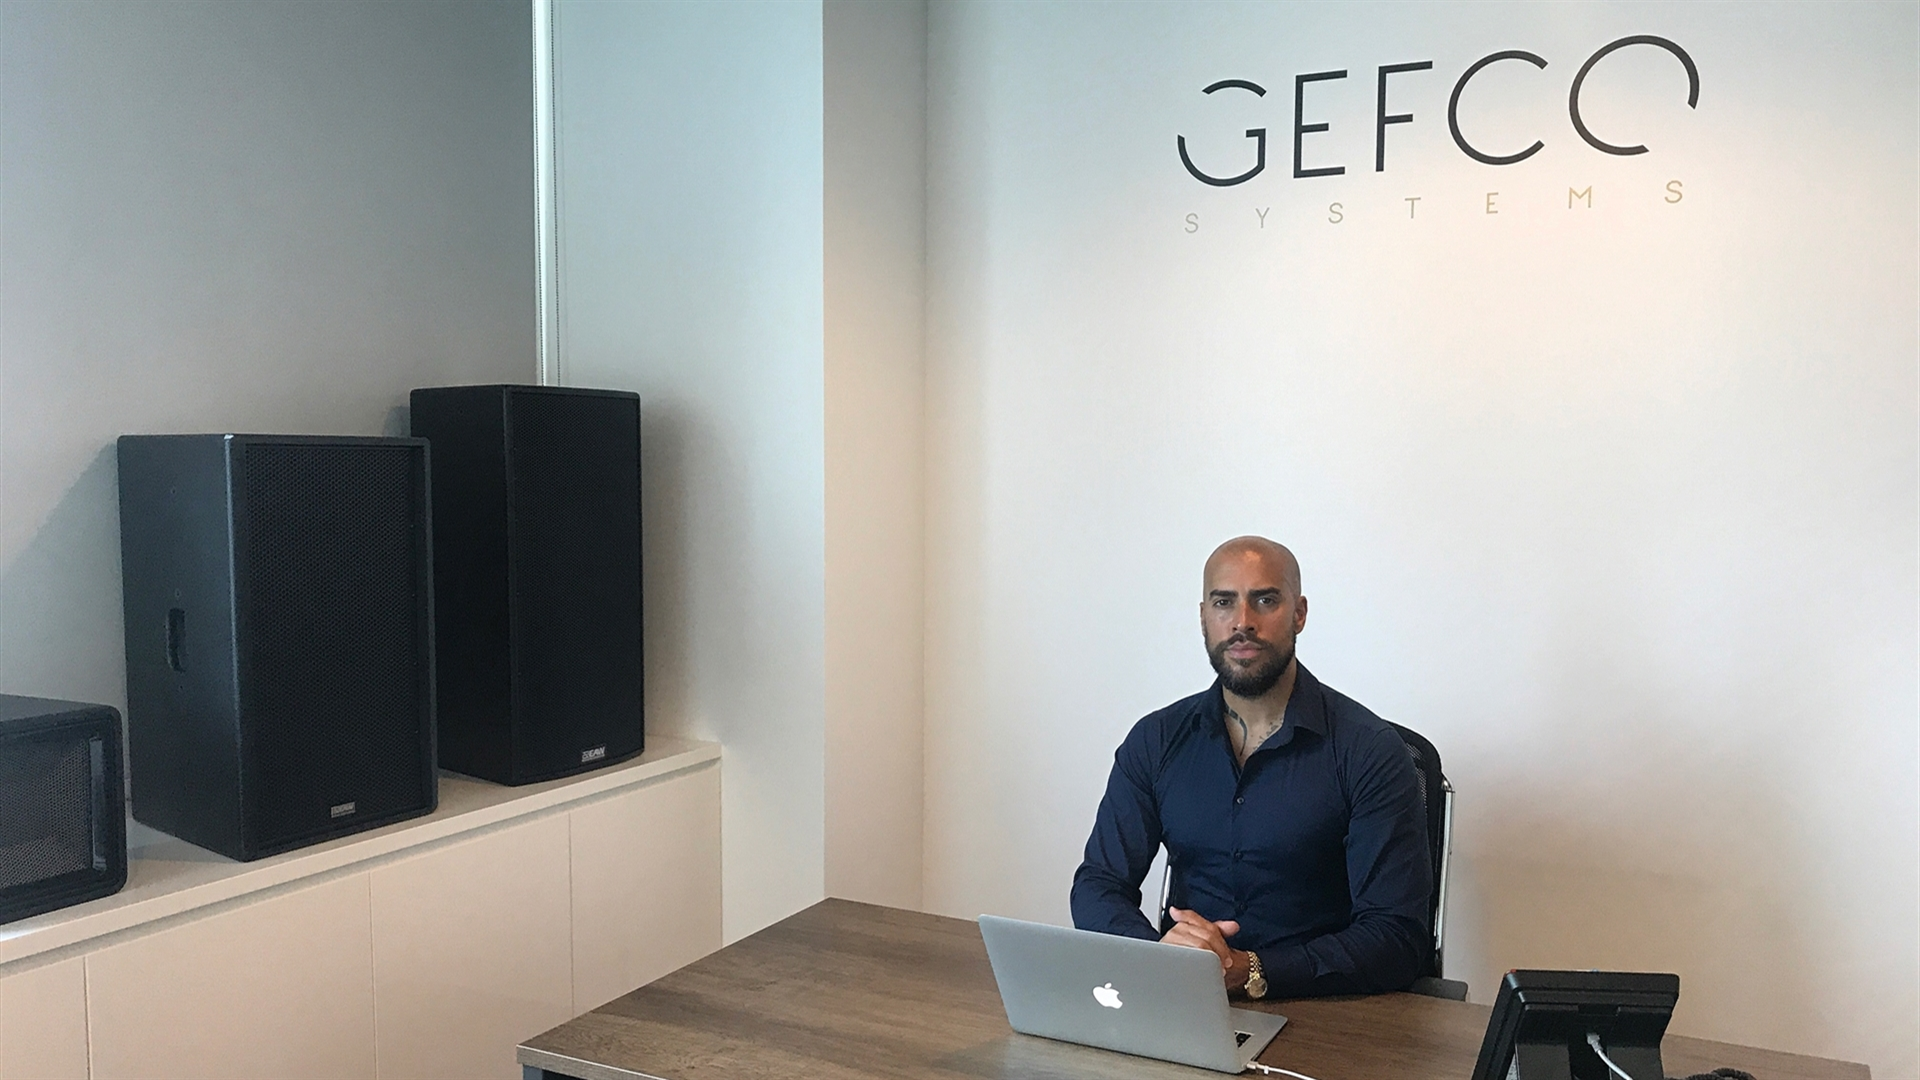 Gefco opens for business